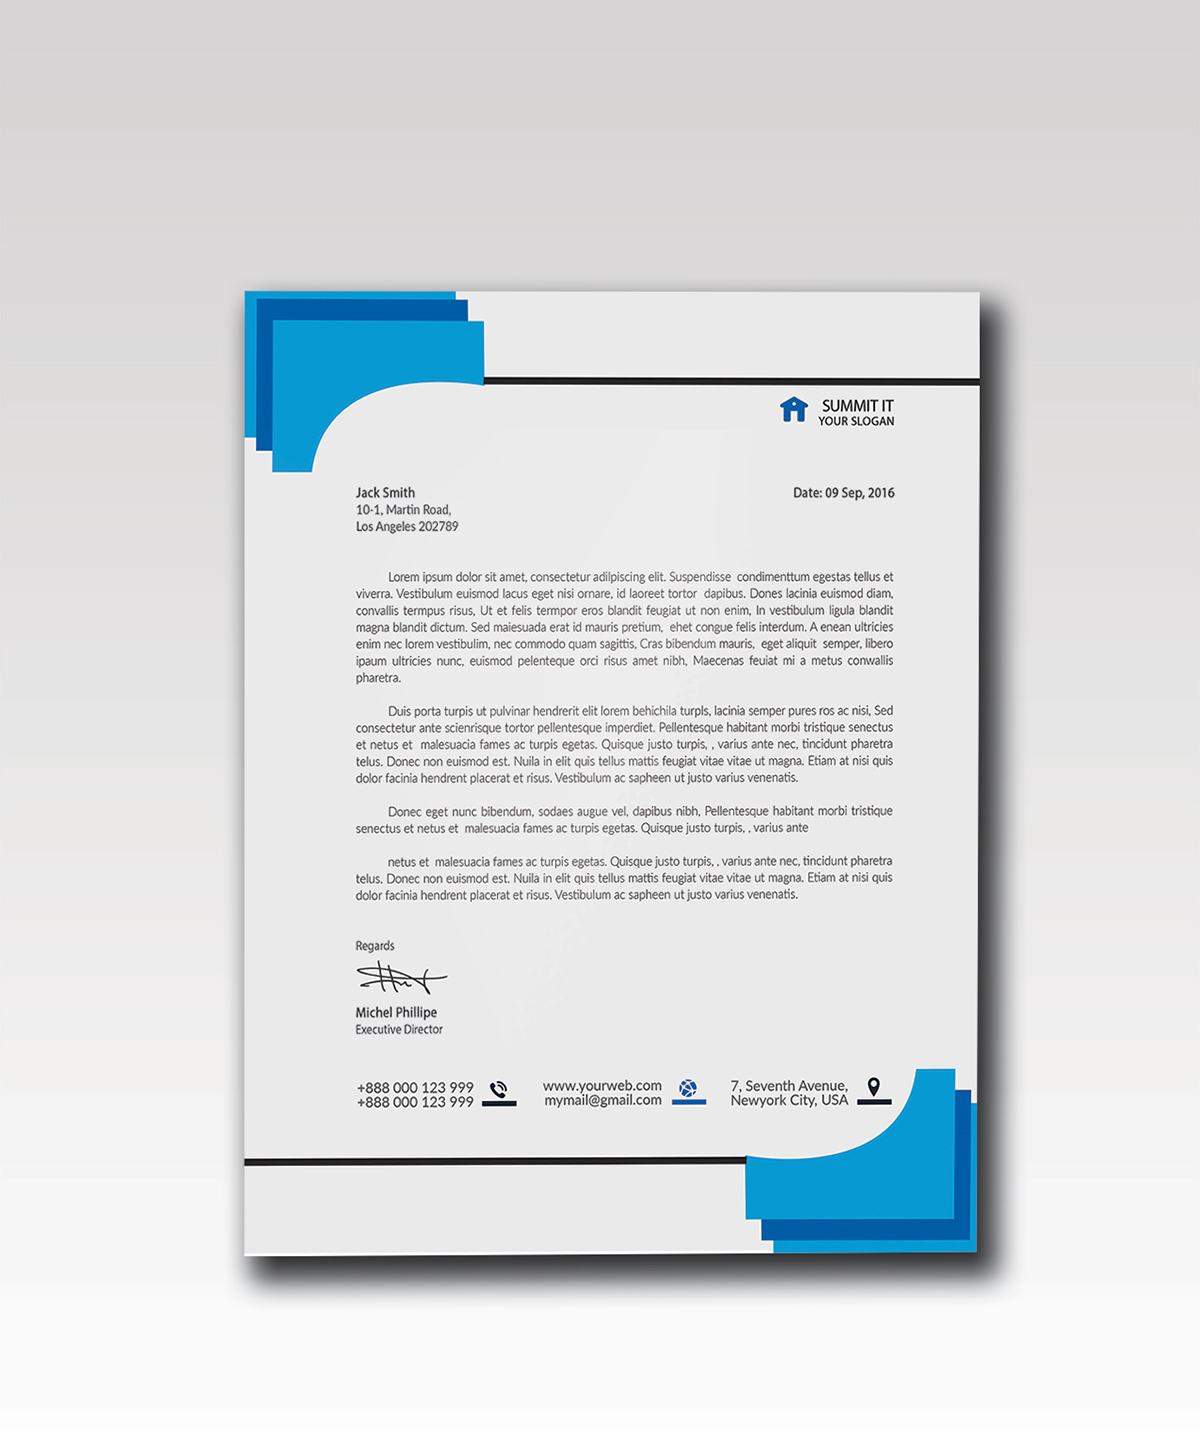 FREE Graphicriver Corporate Letterhead PSD On Behance